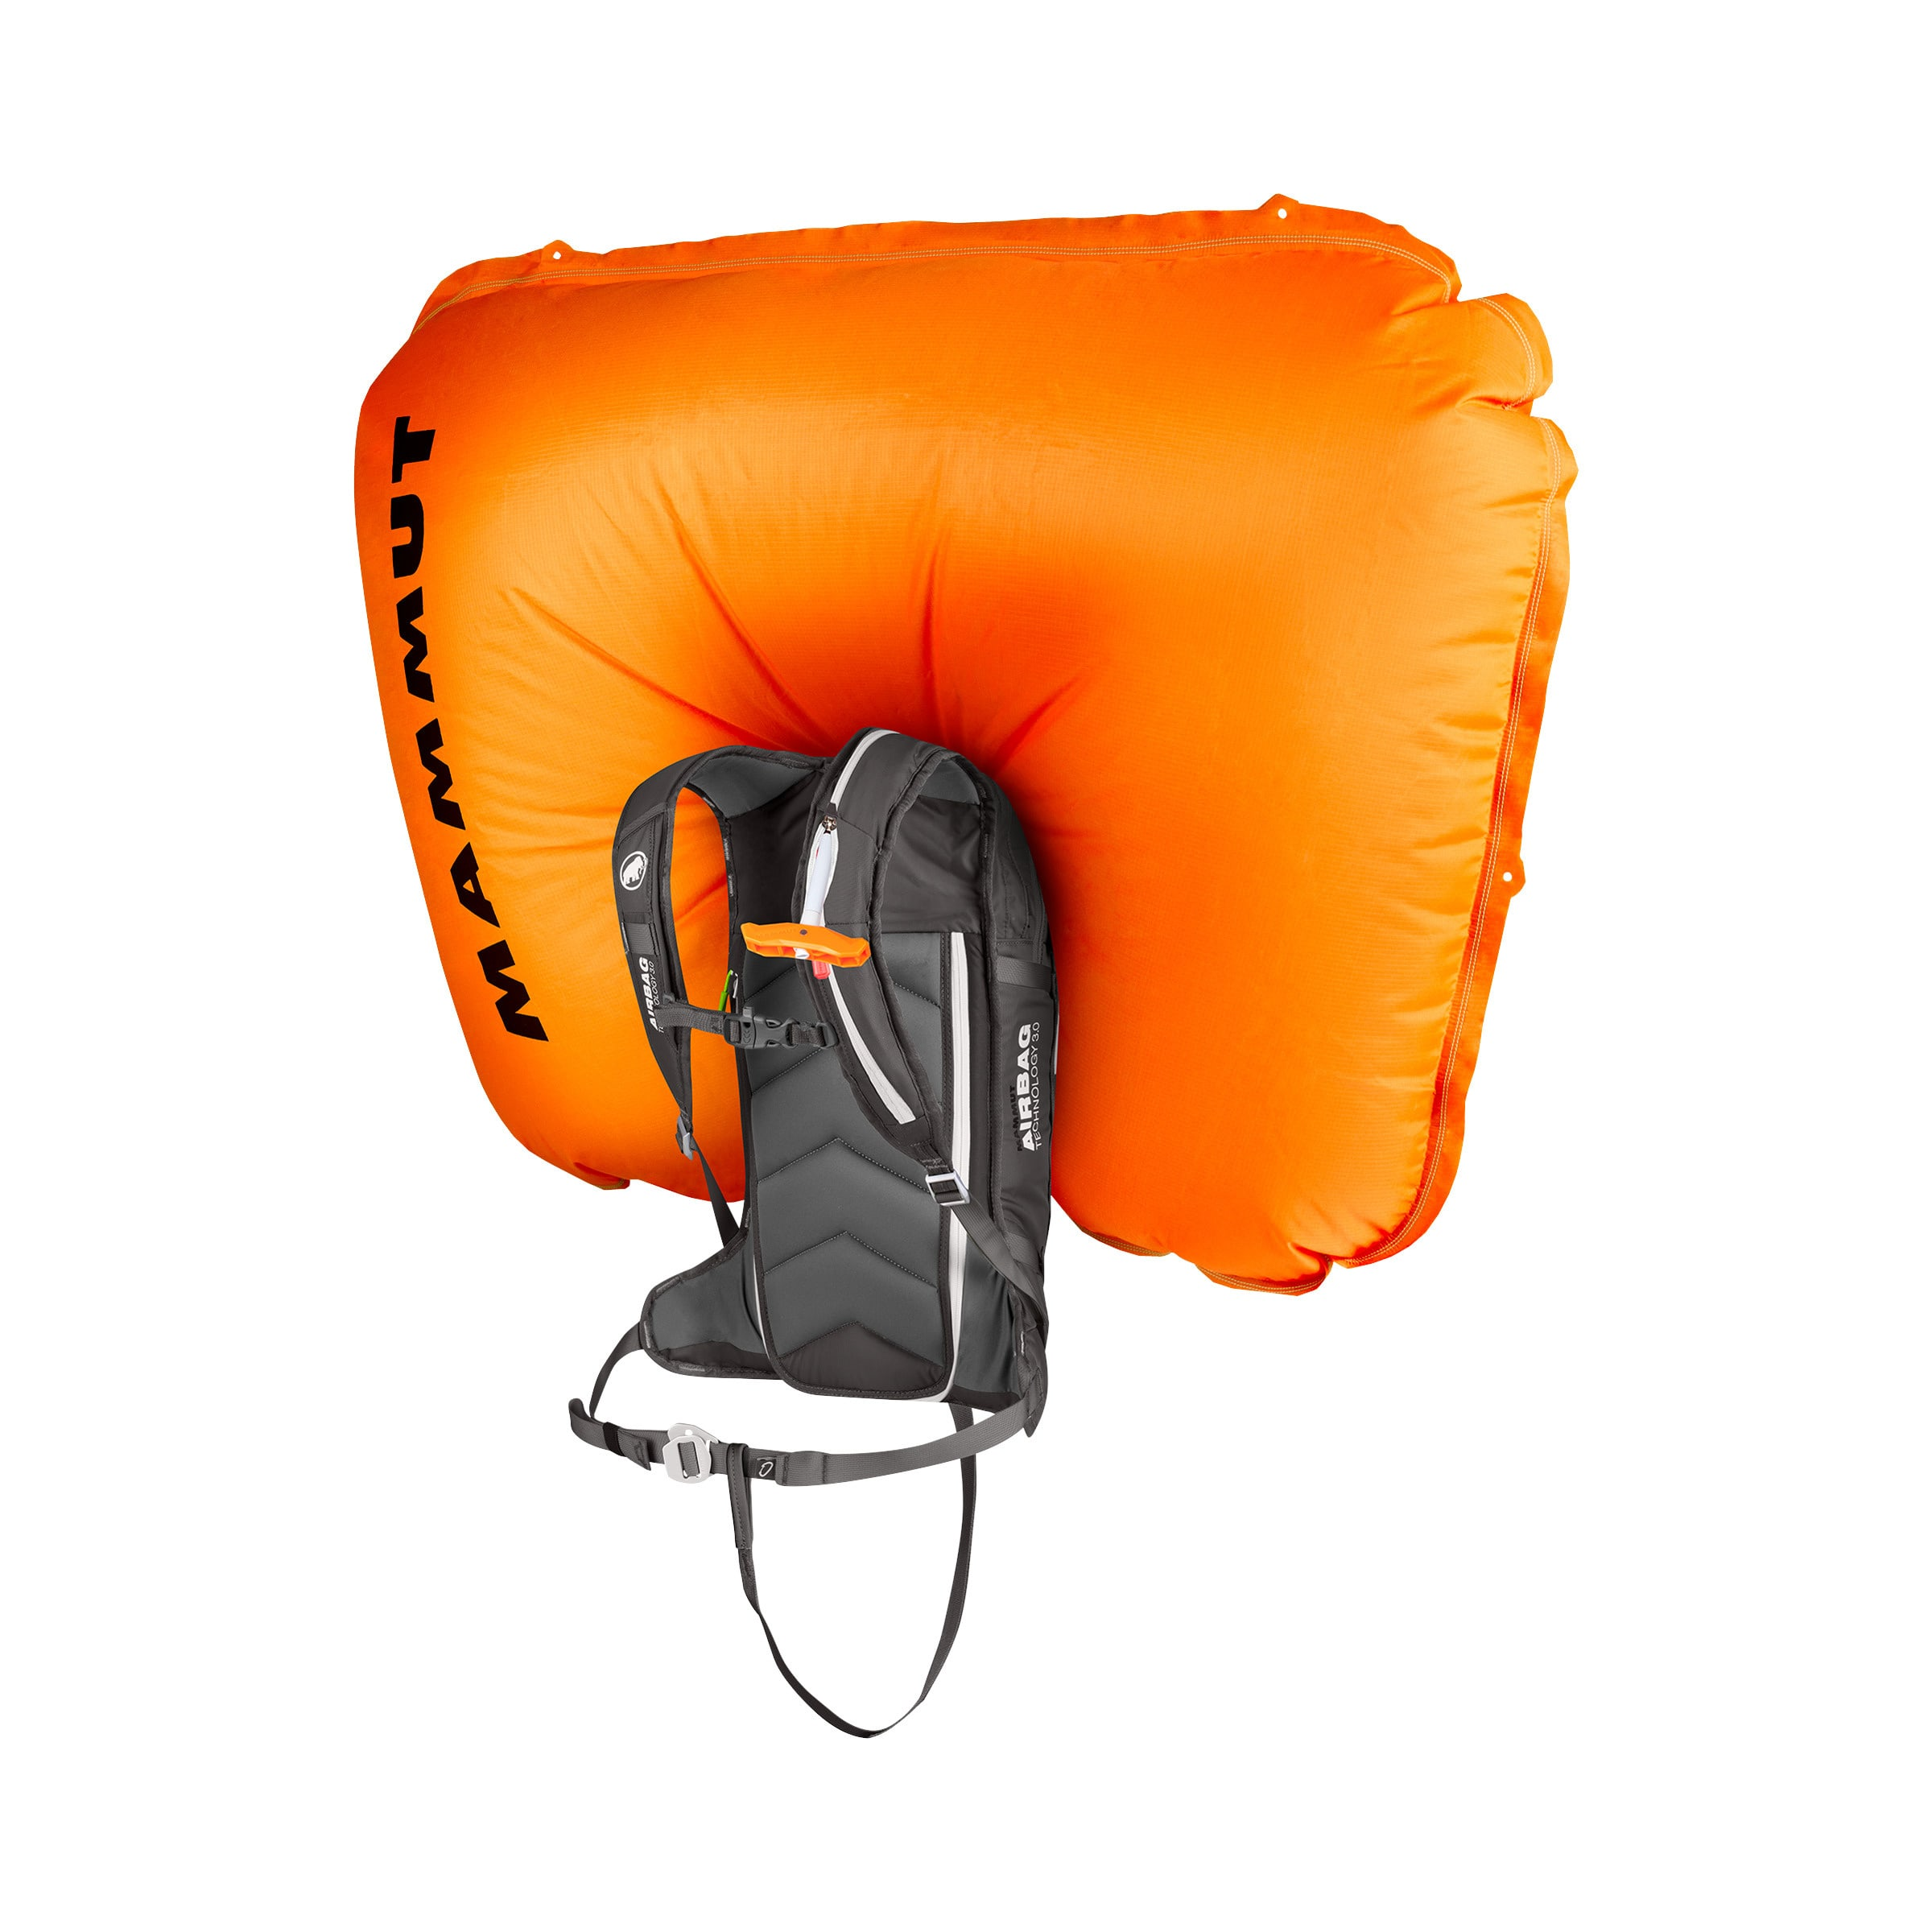 e5ab8f01 Buy Mammut Flip Removable Airbag 3.0 from Outnorth